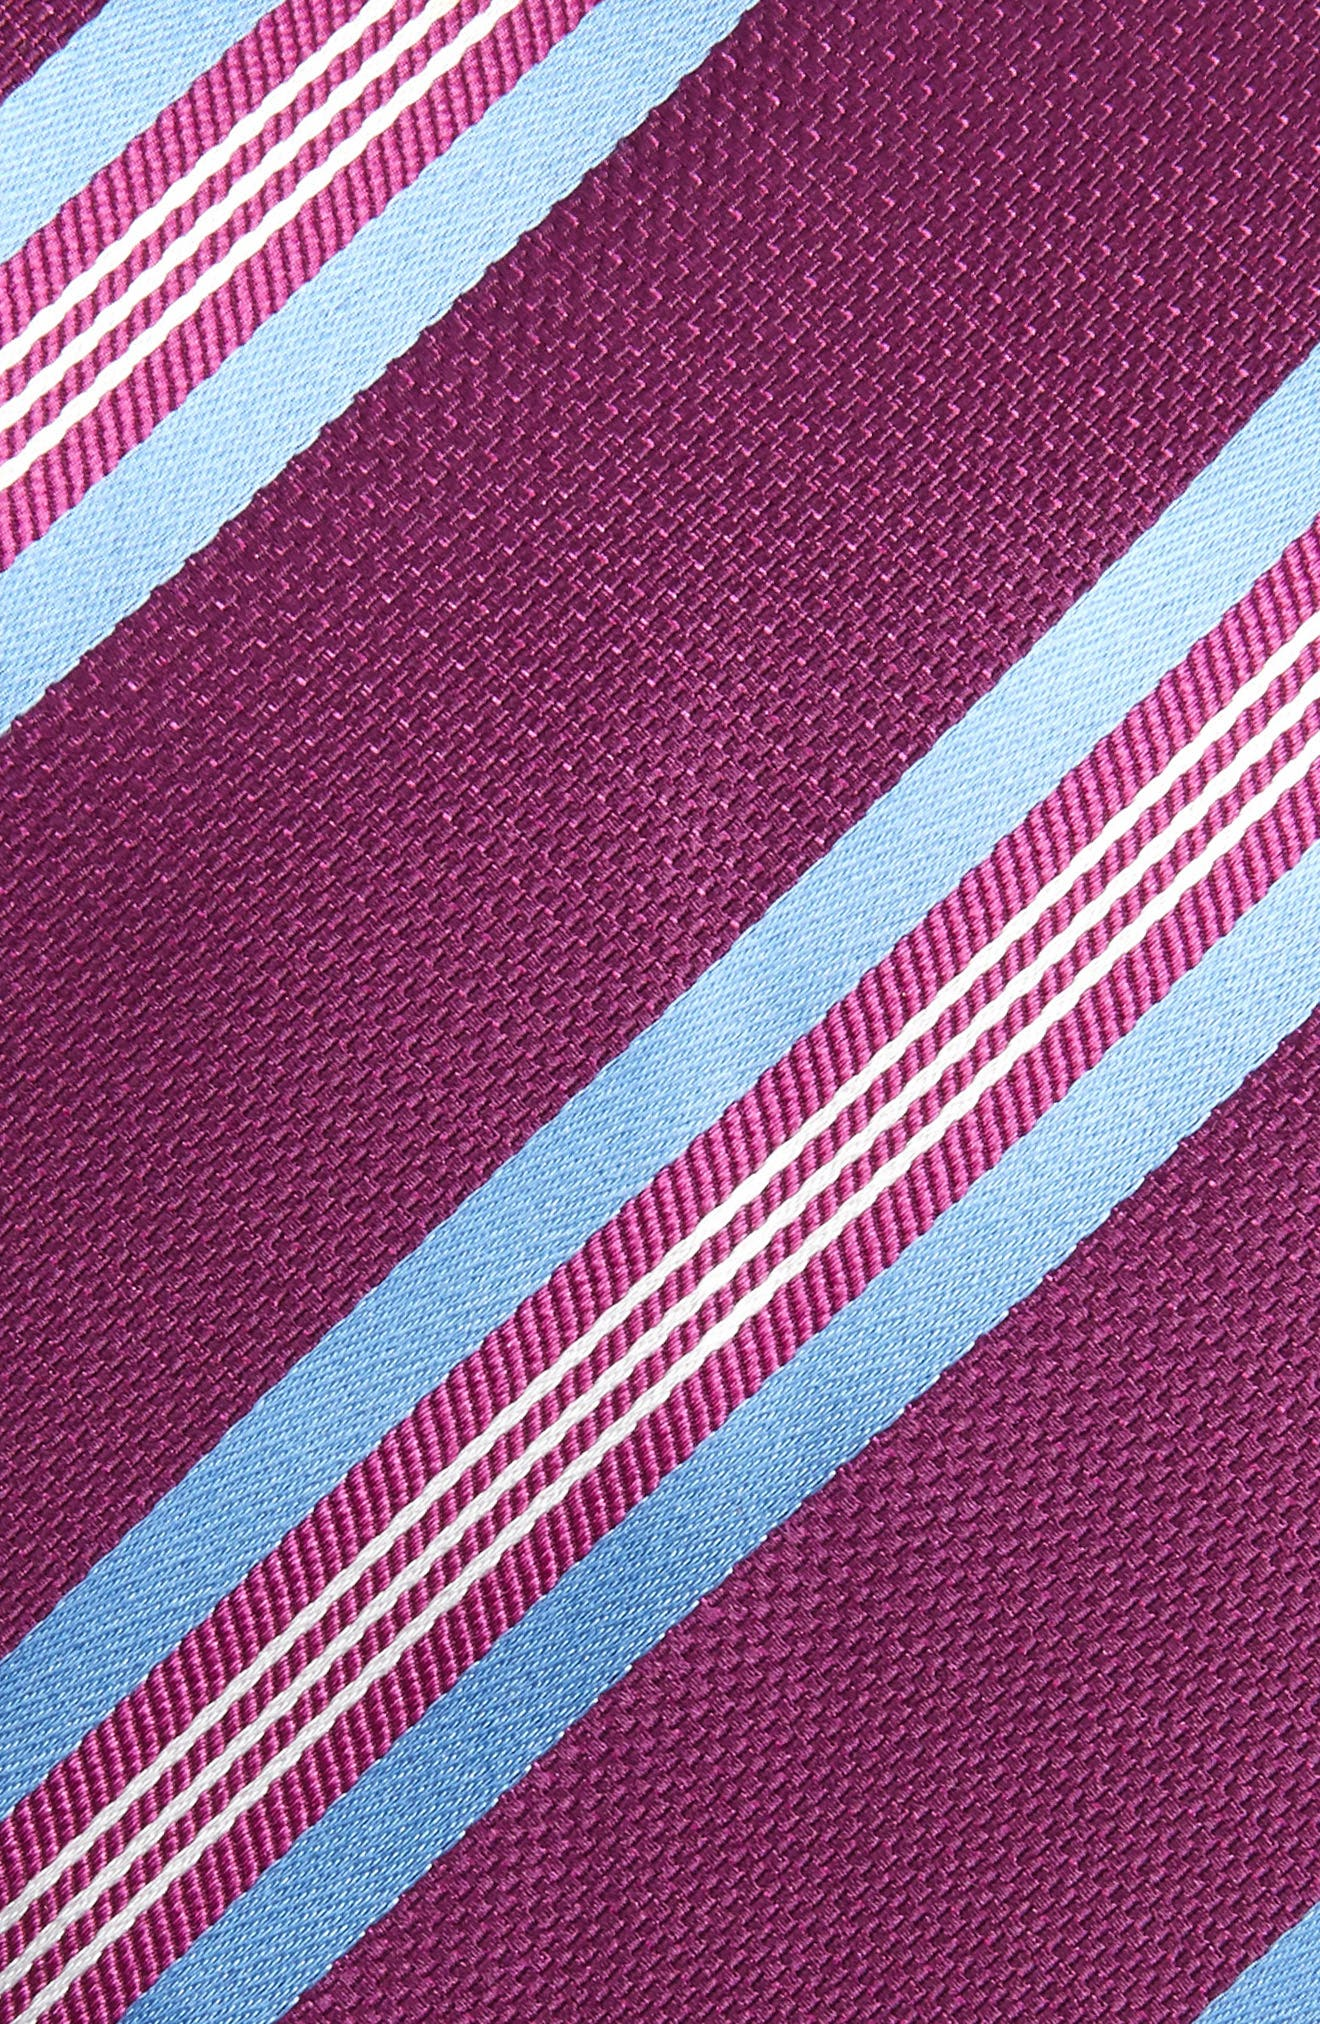 Striped Silk Tie,                             Alternate thumbnail 2, color,                             652